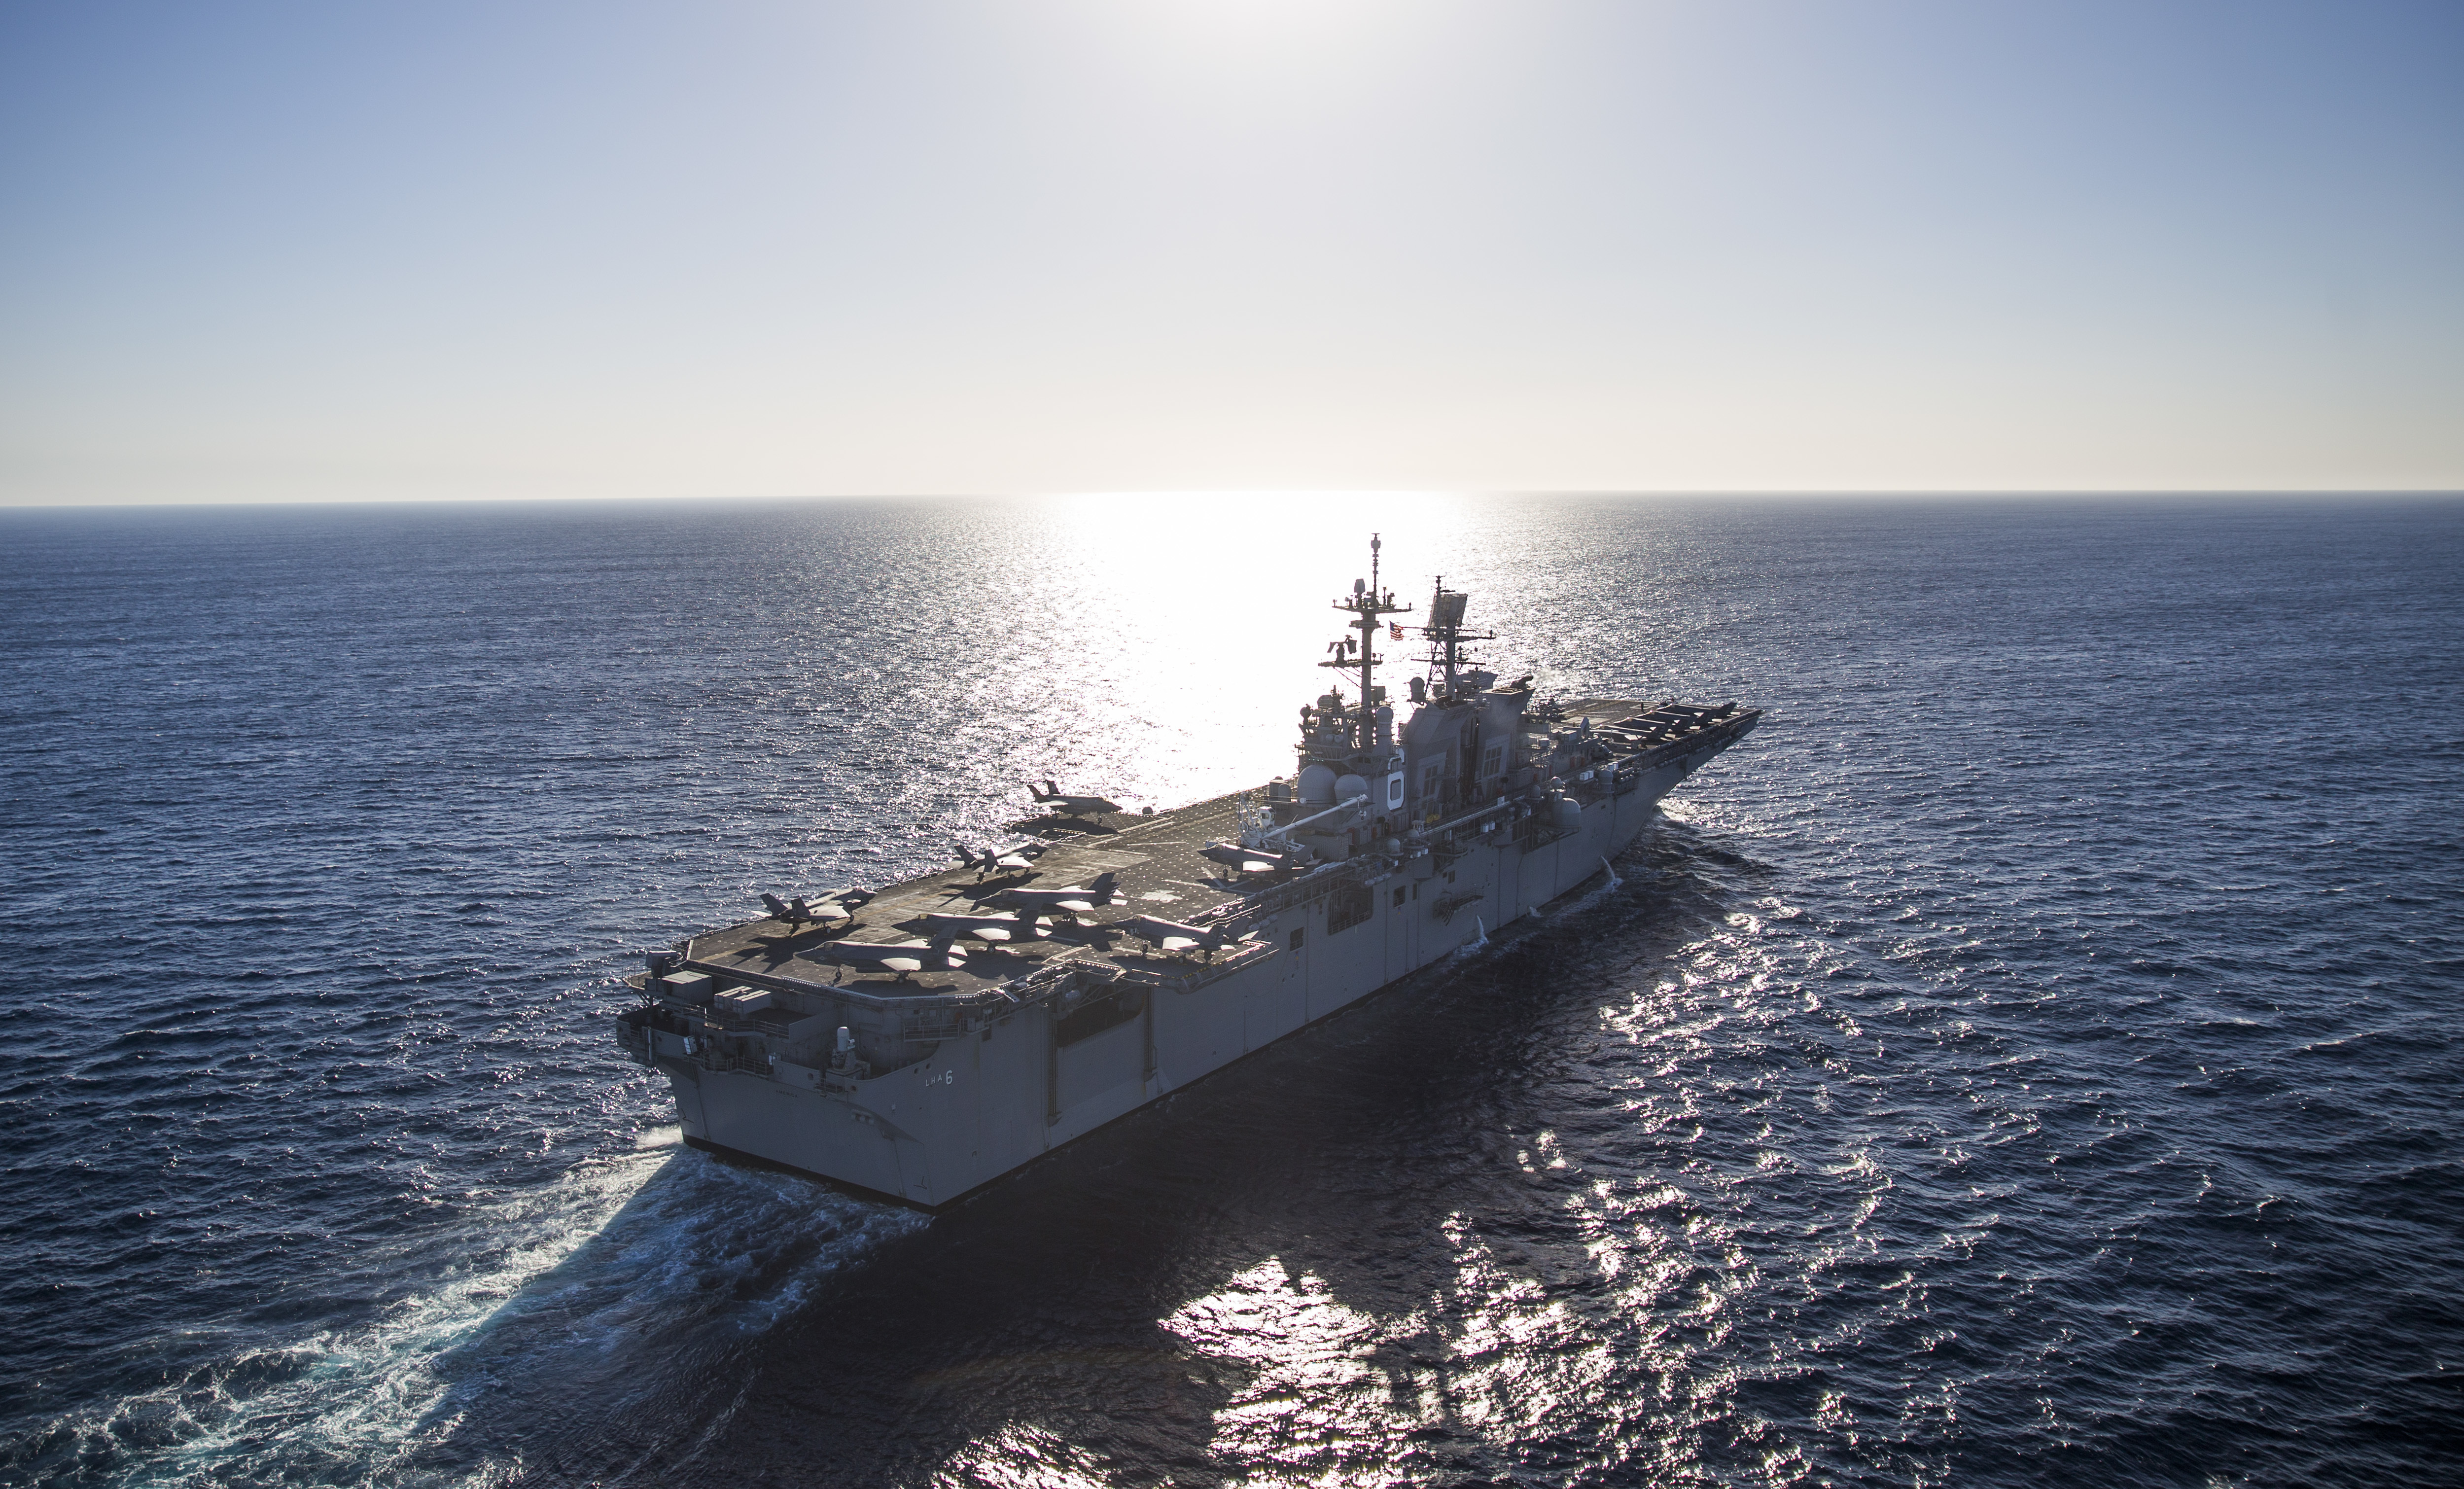 The USS America (LHA 6), floats off the coast of California, November 18, 2016. US Marine Corps photo.